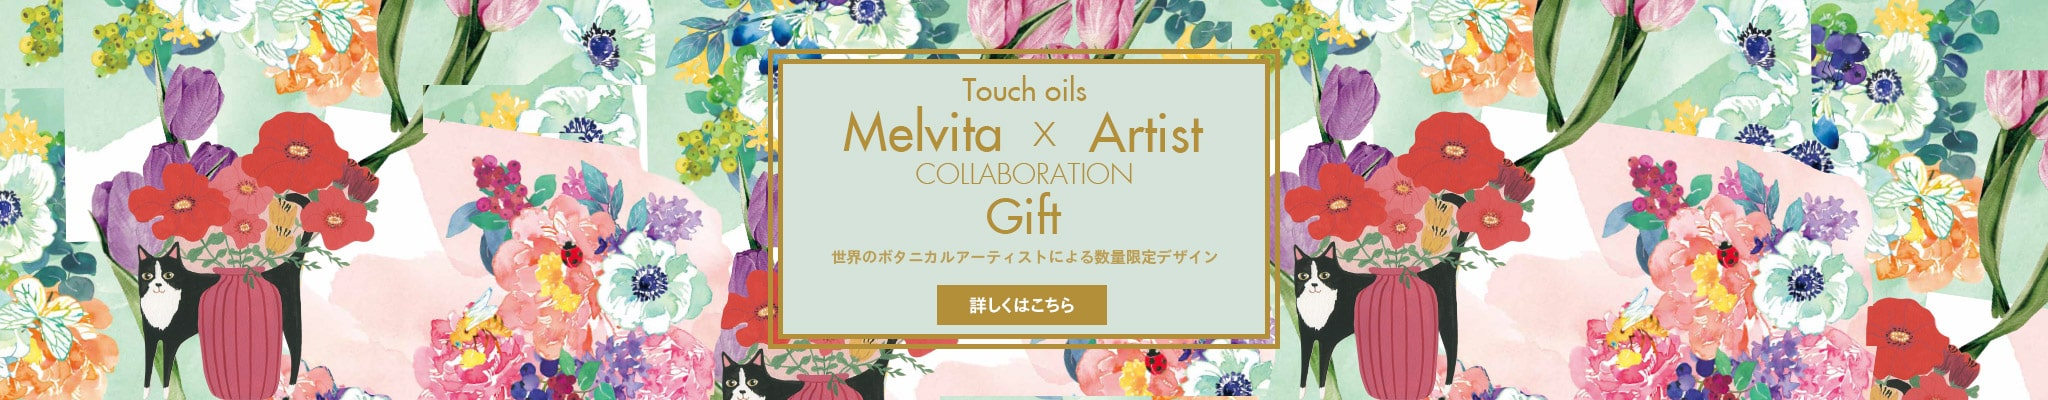 Melvita x Artist Collaboration Gift